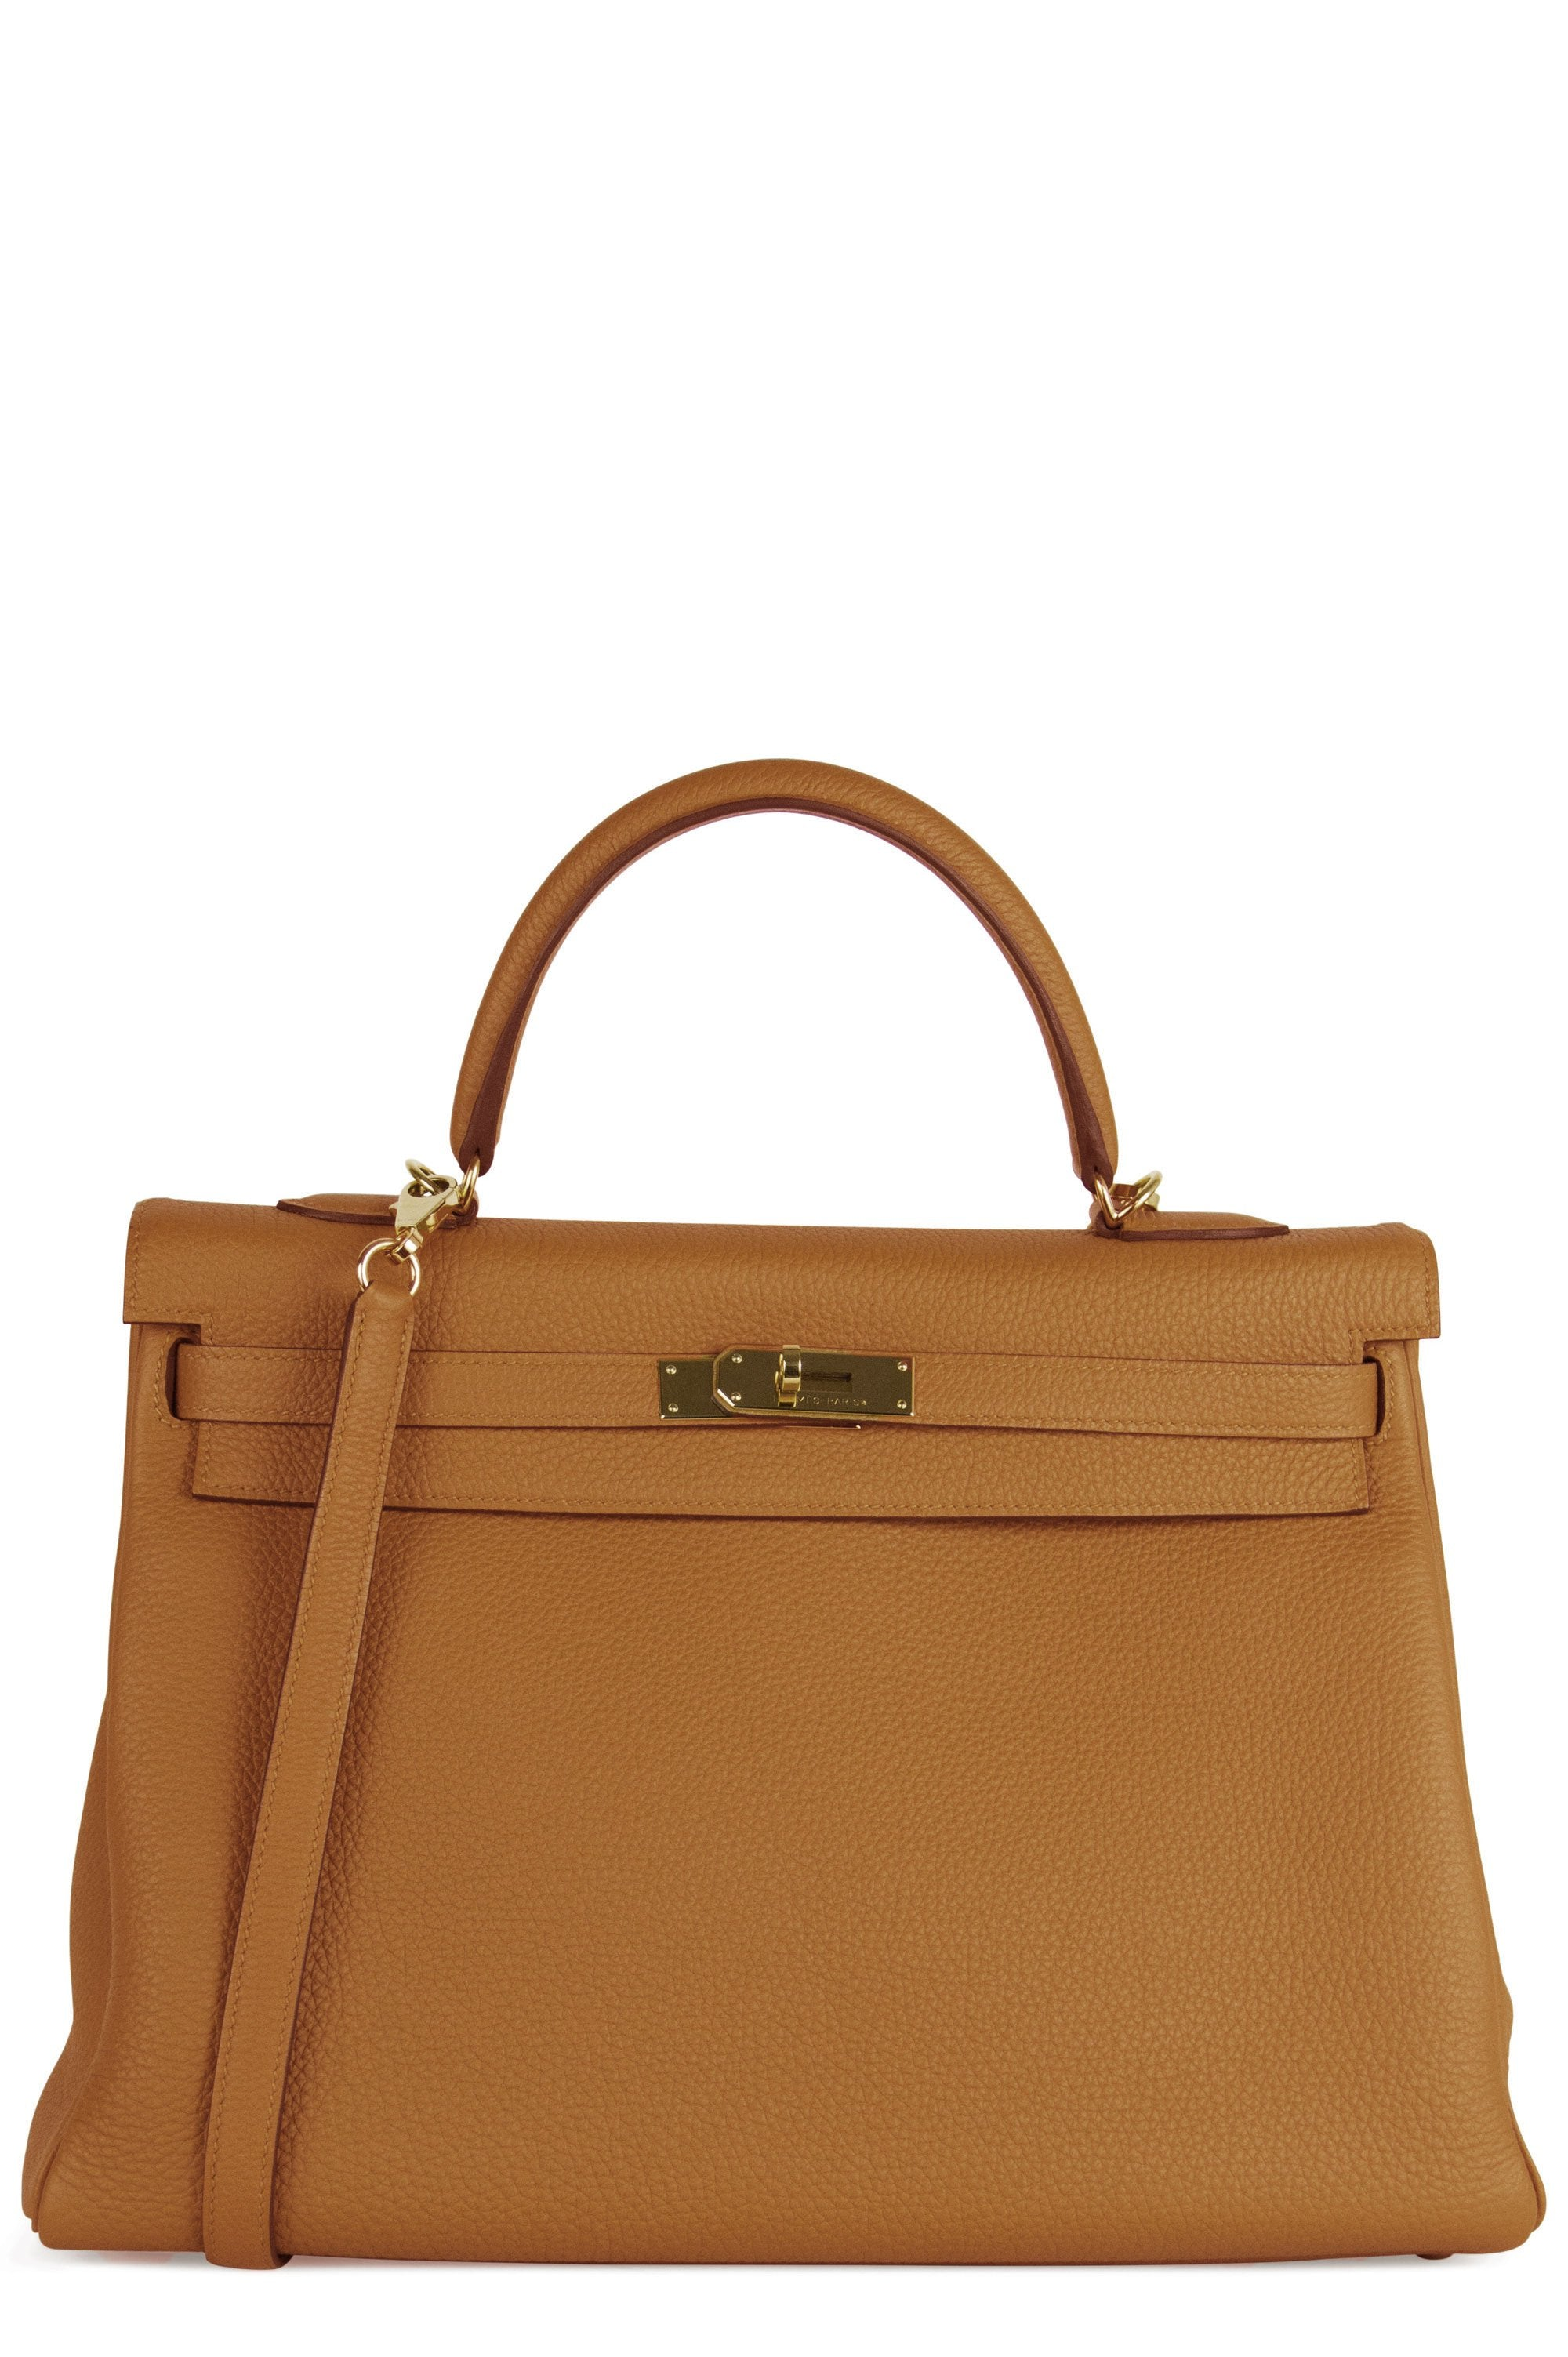 Hermès Kelly 35 Bag Caramel Togo Leather Frontalansicht